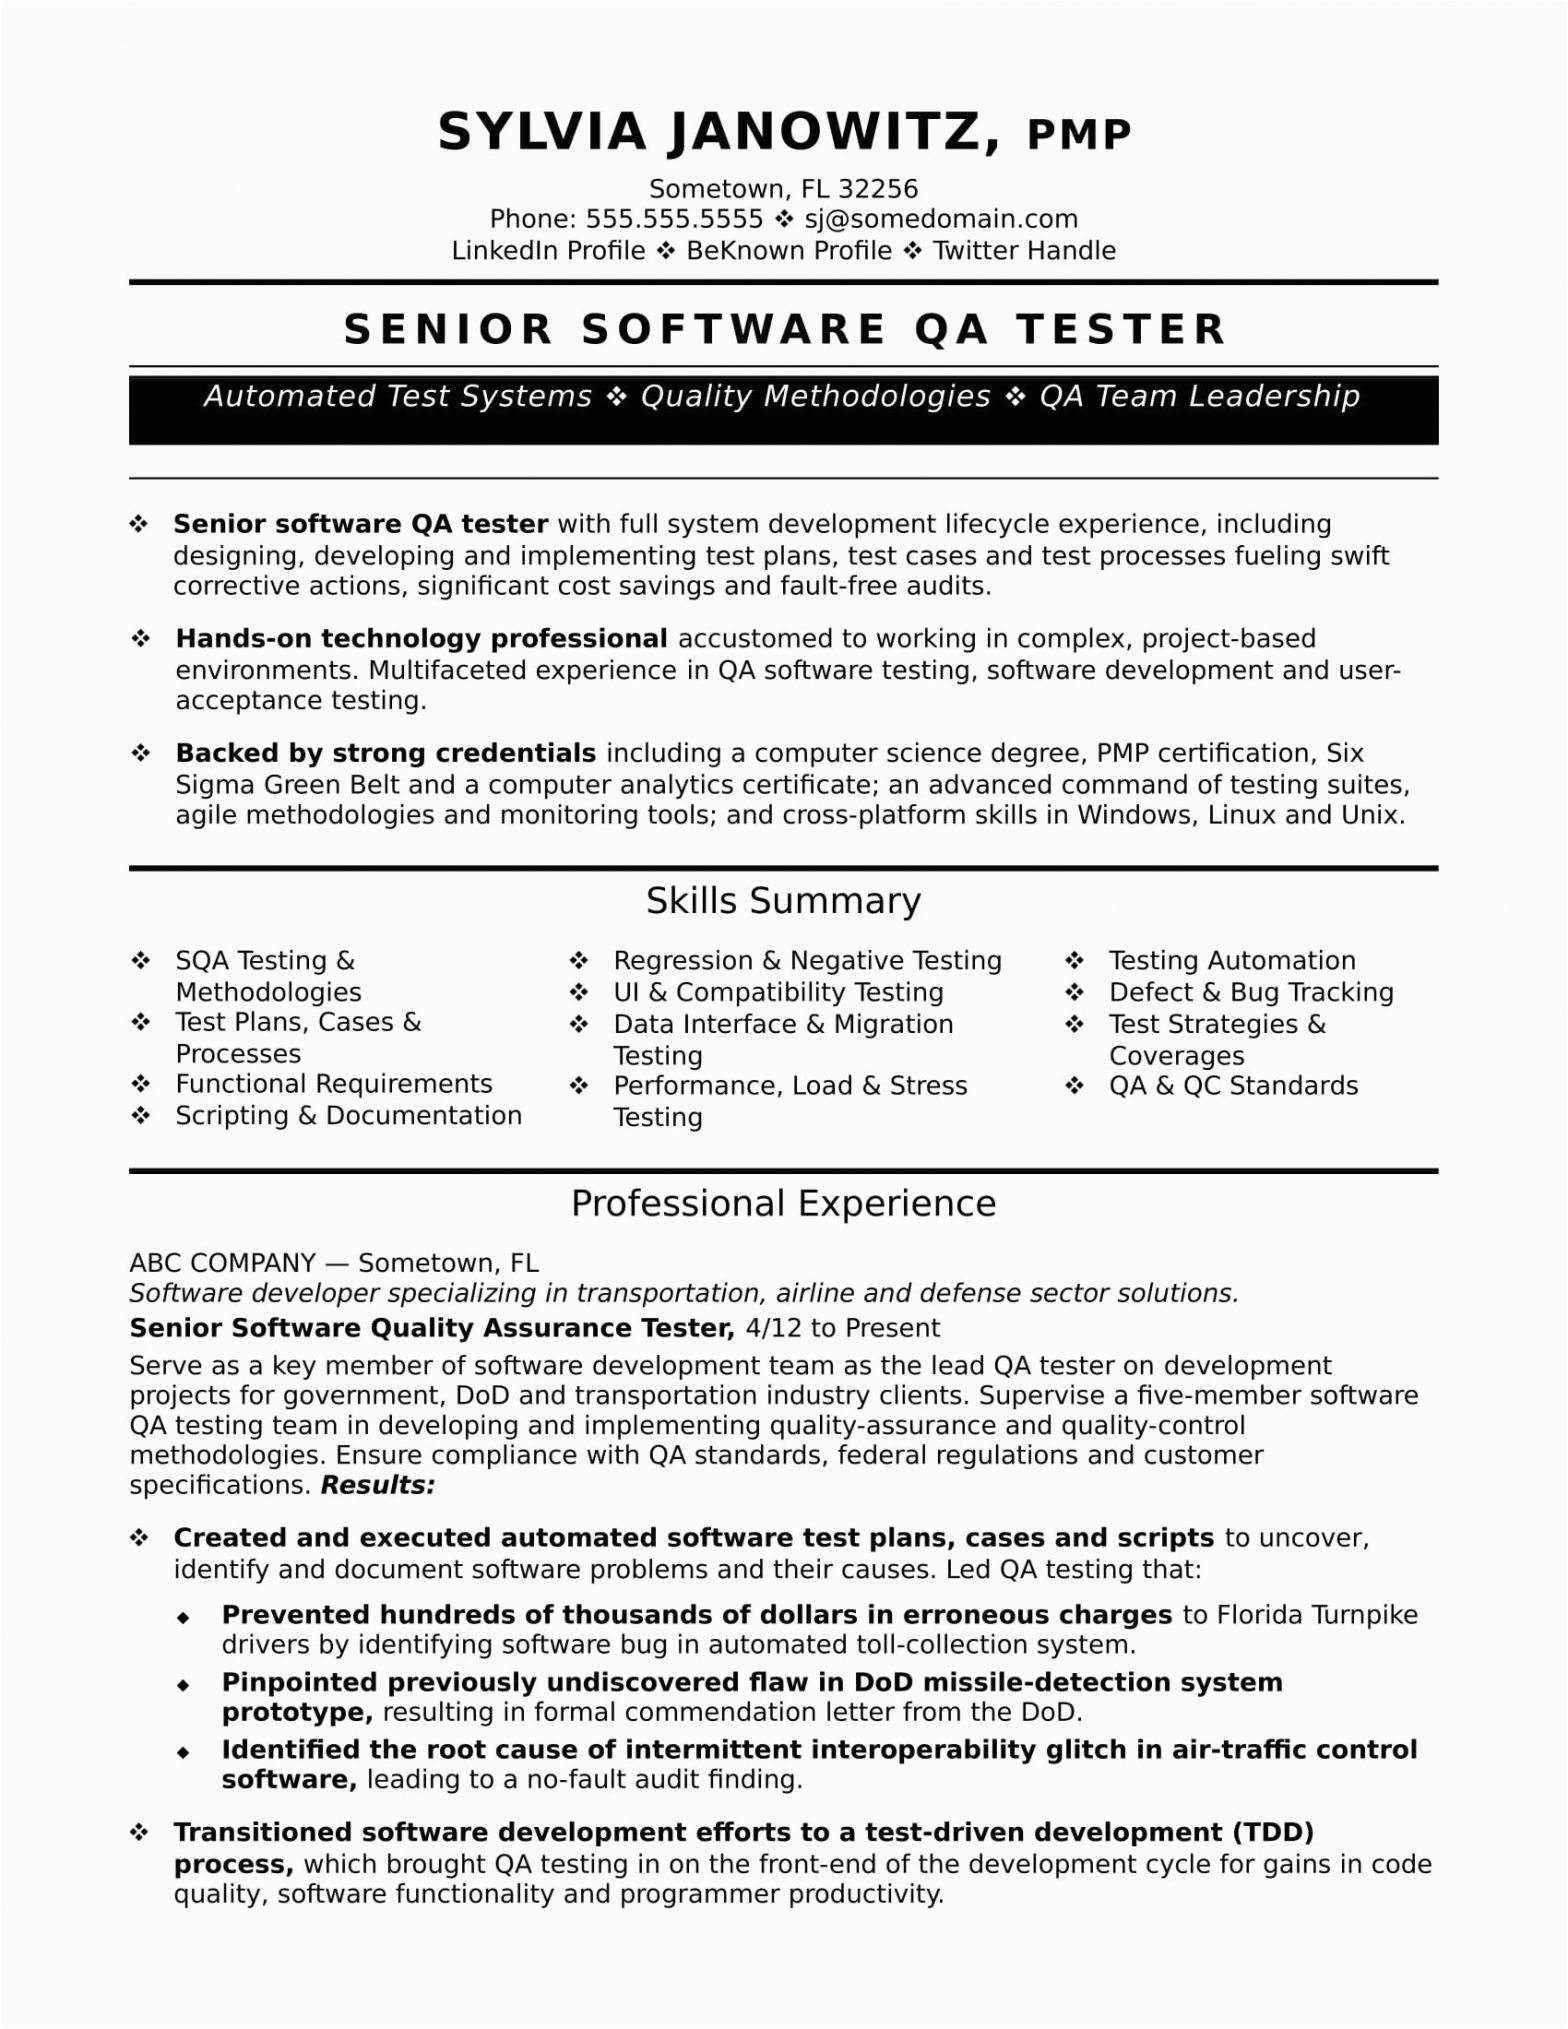 Sample Resume for Experienced software Tester Experienced Qa software Tester Resume Sample